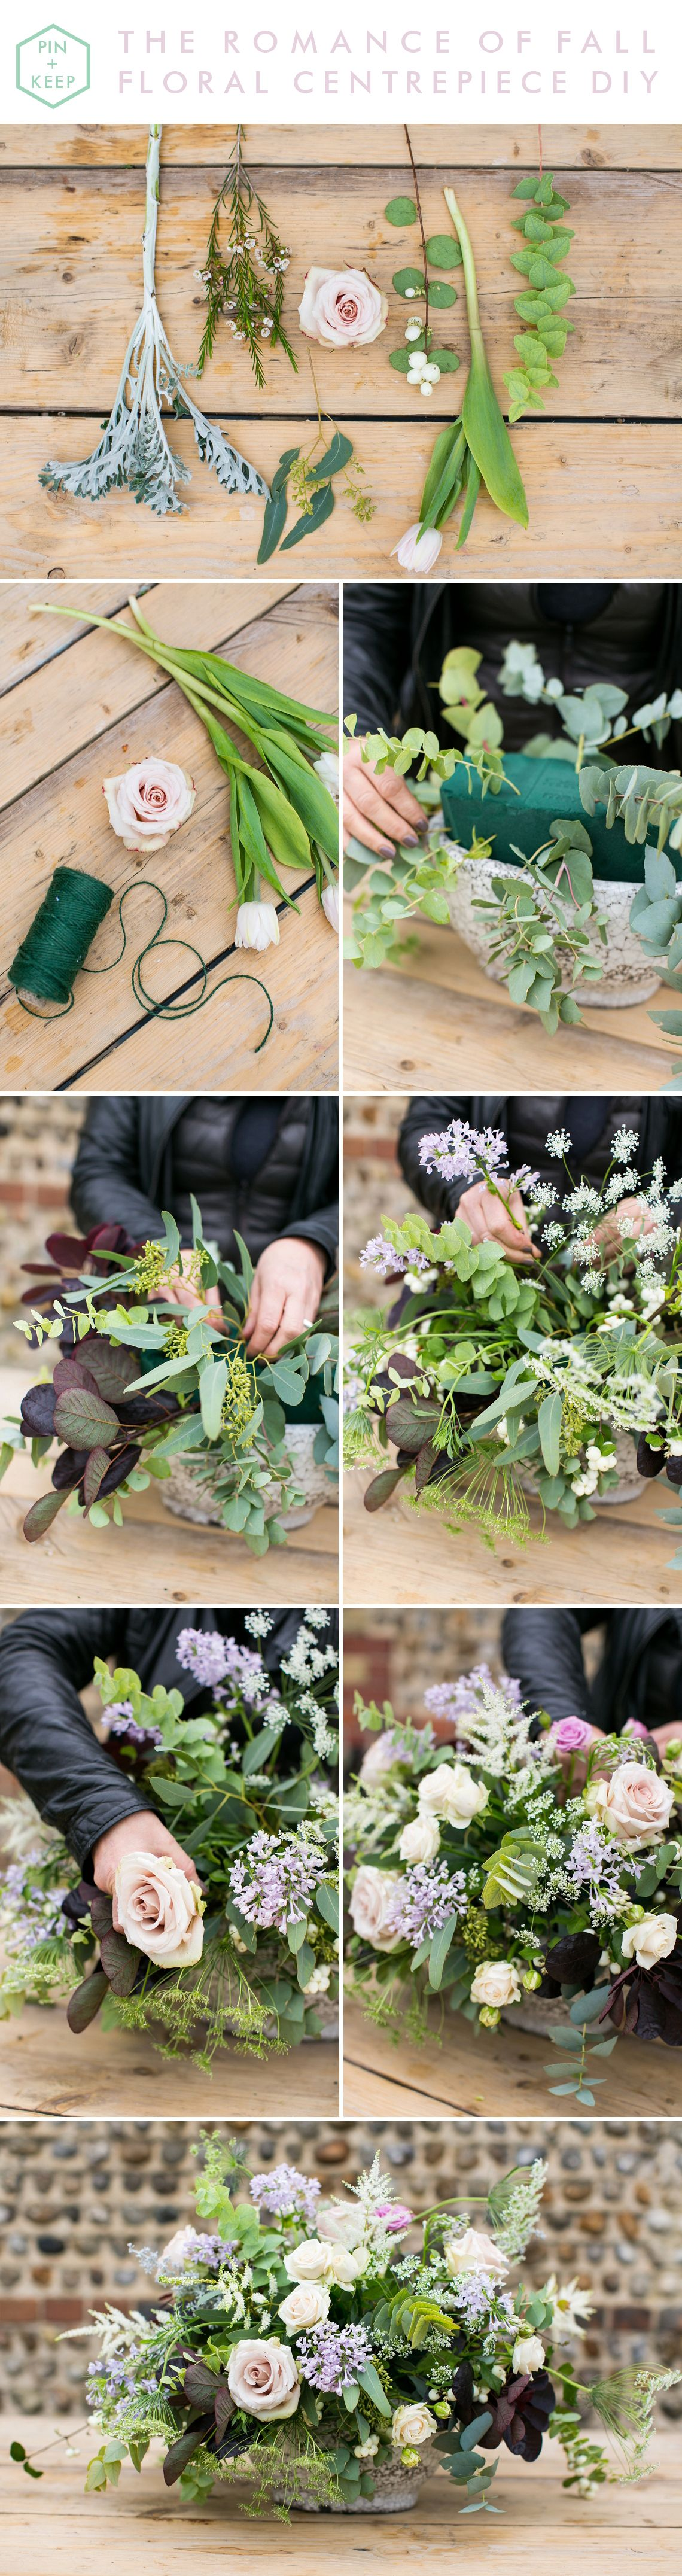 How to create a romantic muted pastel floral centrepiece for autumn